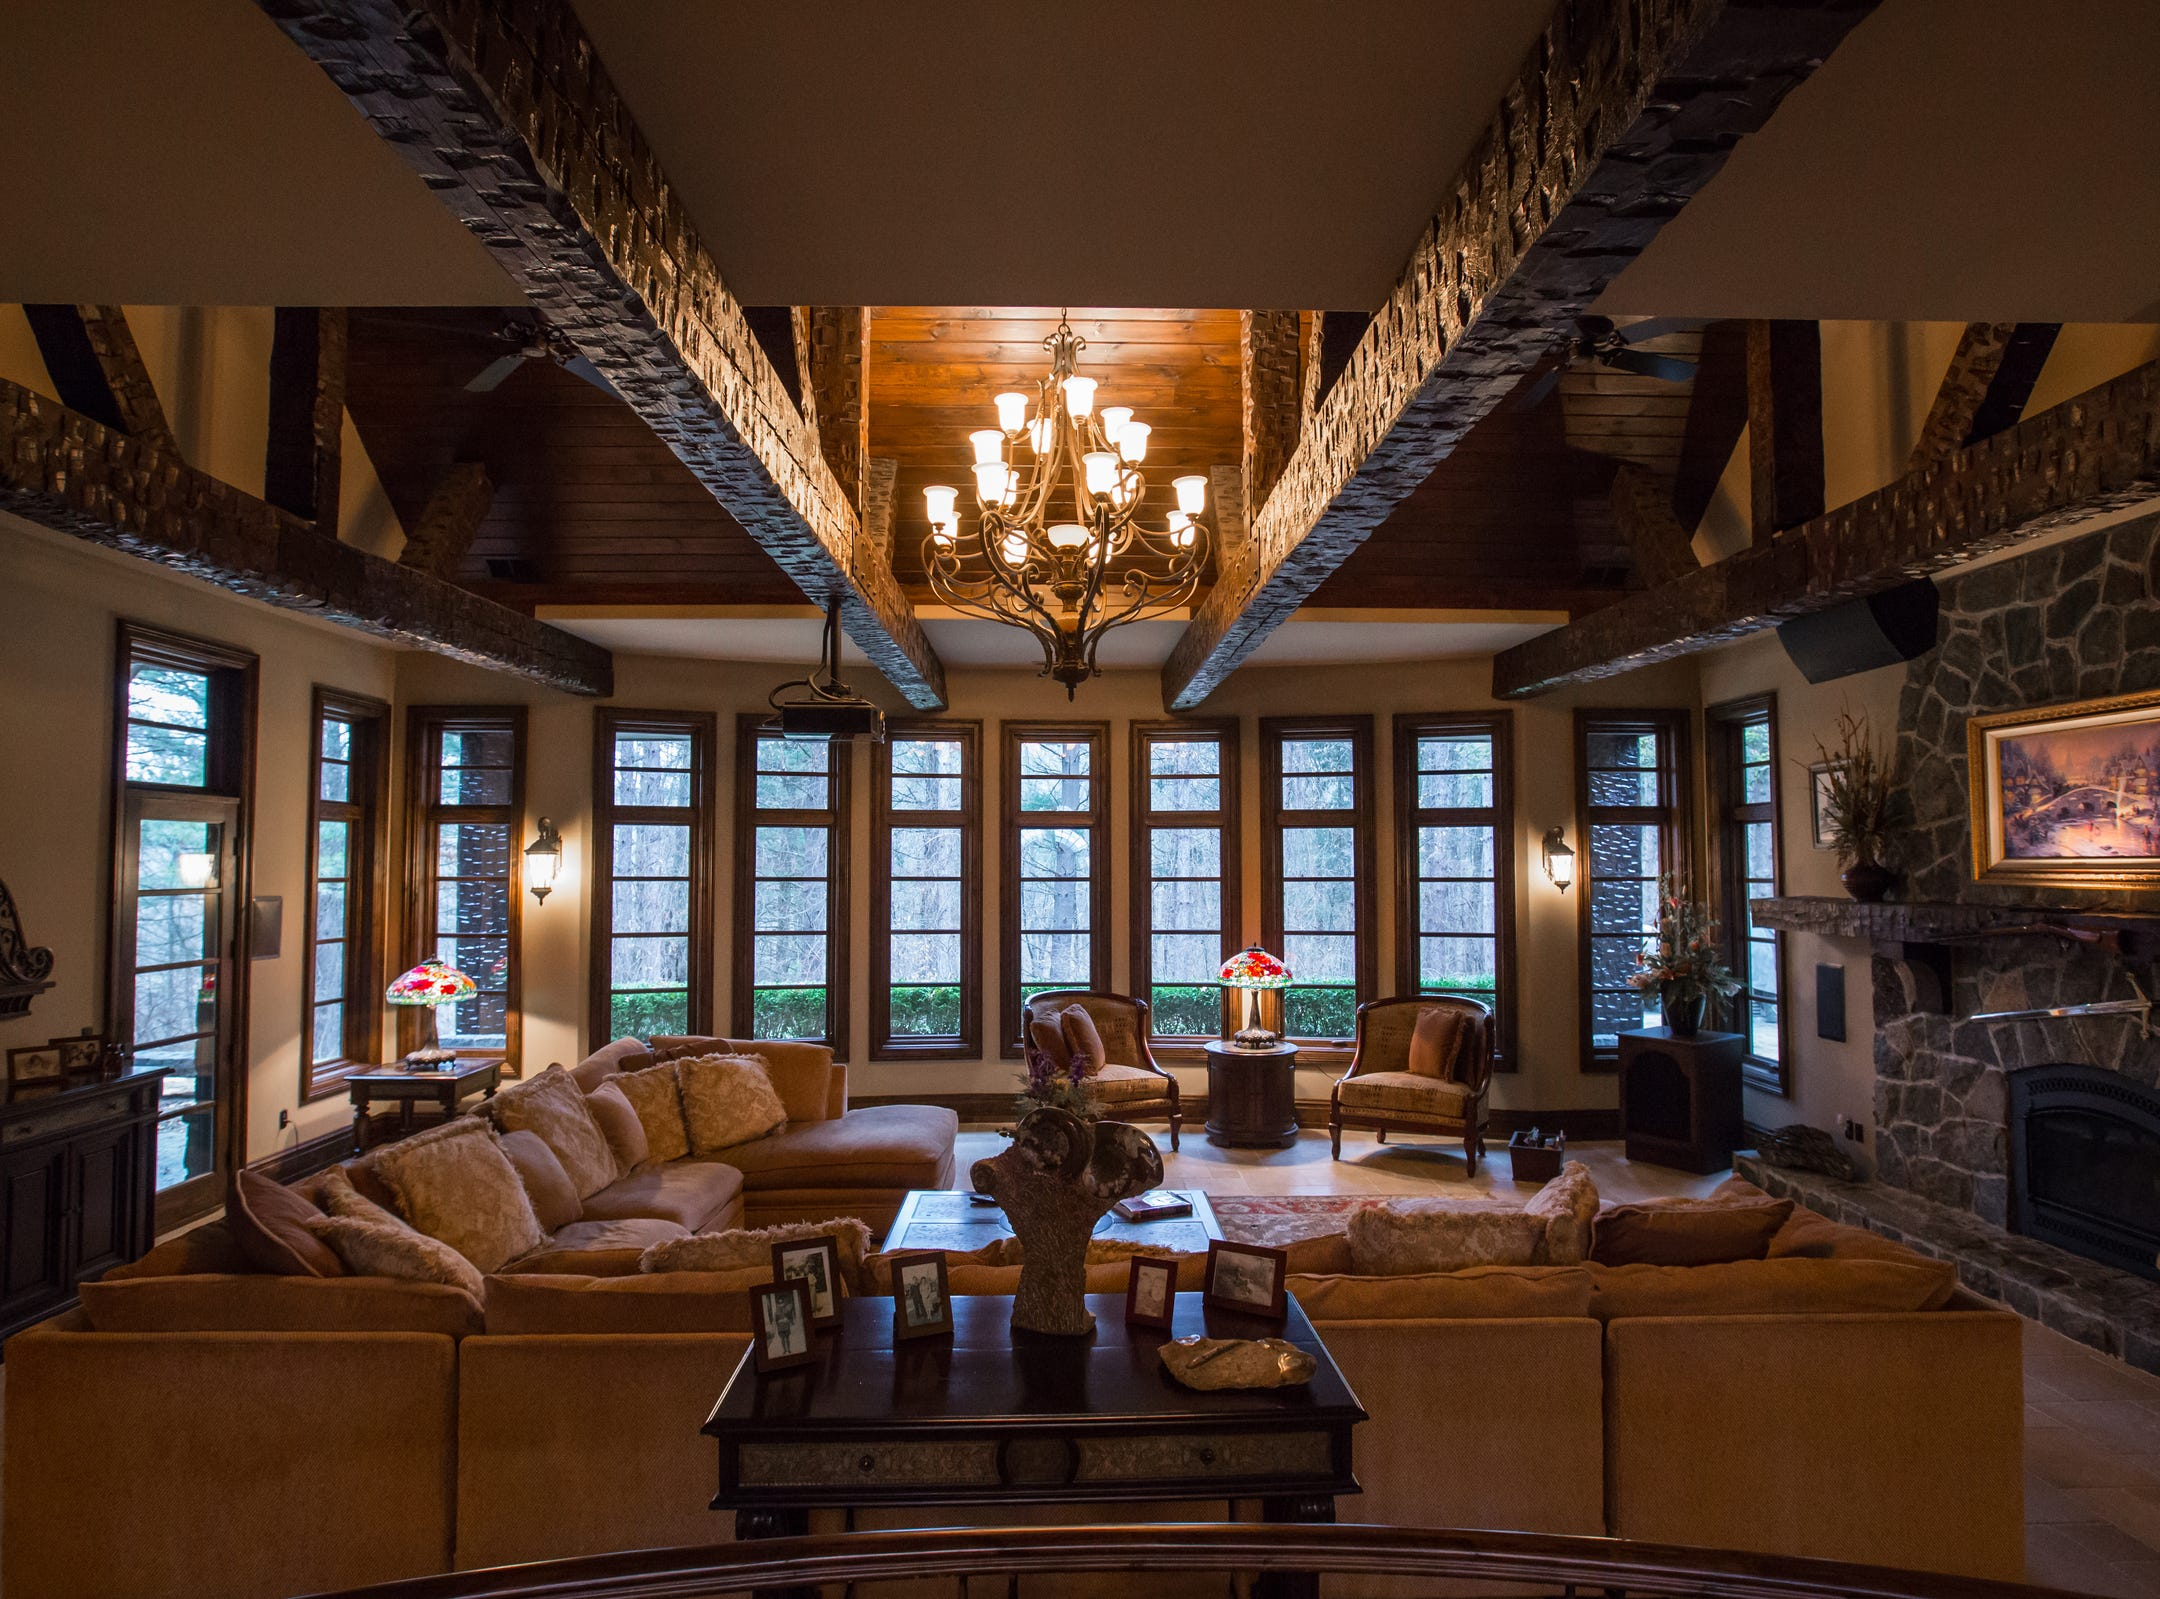 Amish hand hewn beams are leading lines into the great room of the home envisioned after the Biltmore Estate designed by Alex Bogarts and built by an award winning builder as his own personal residence.